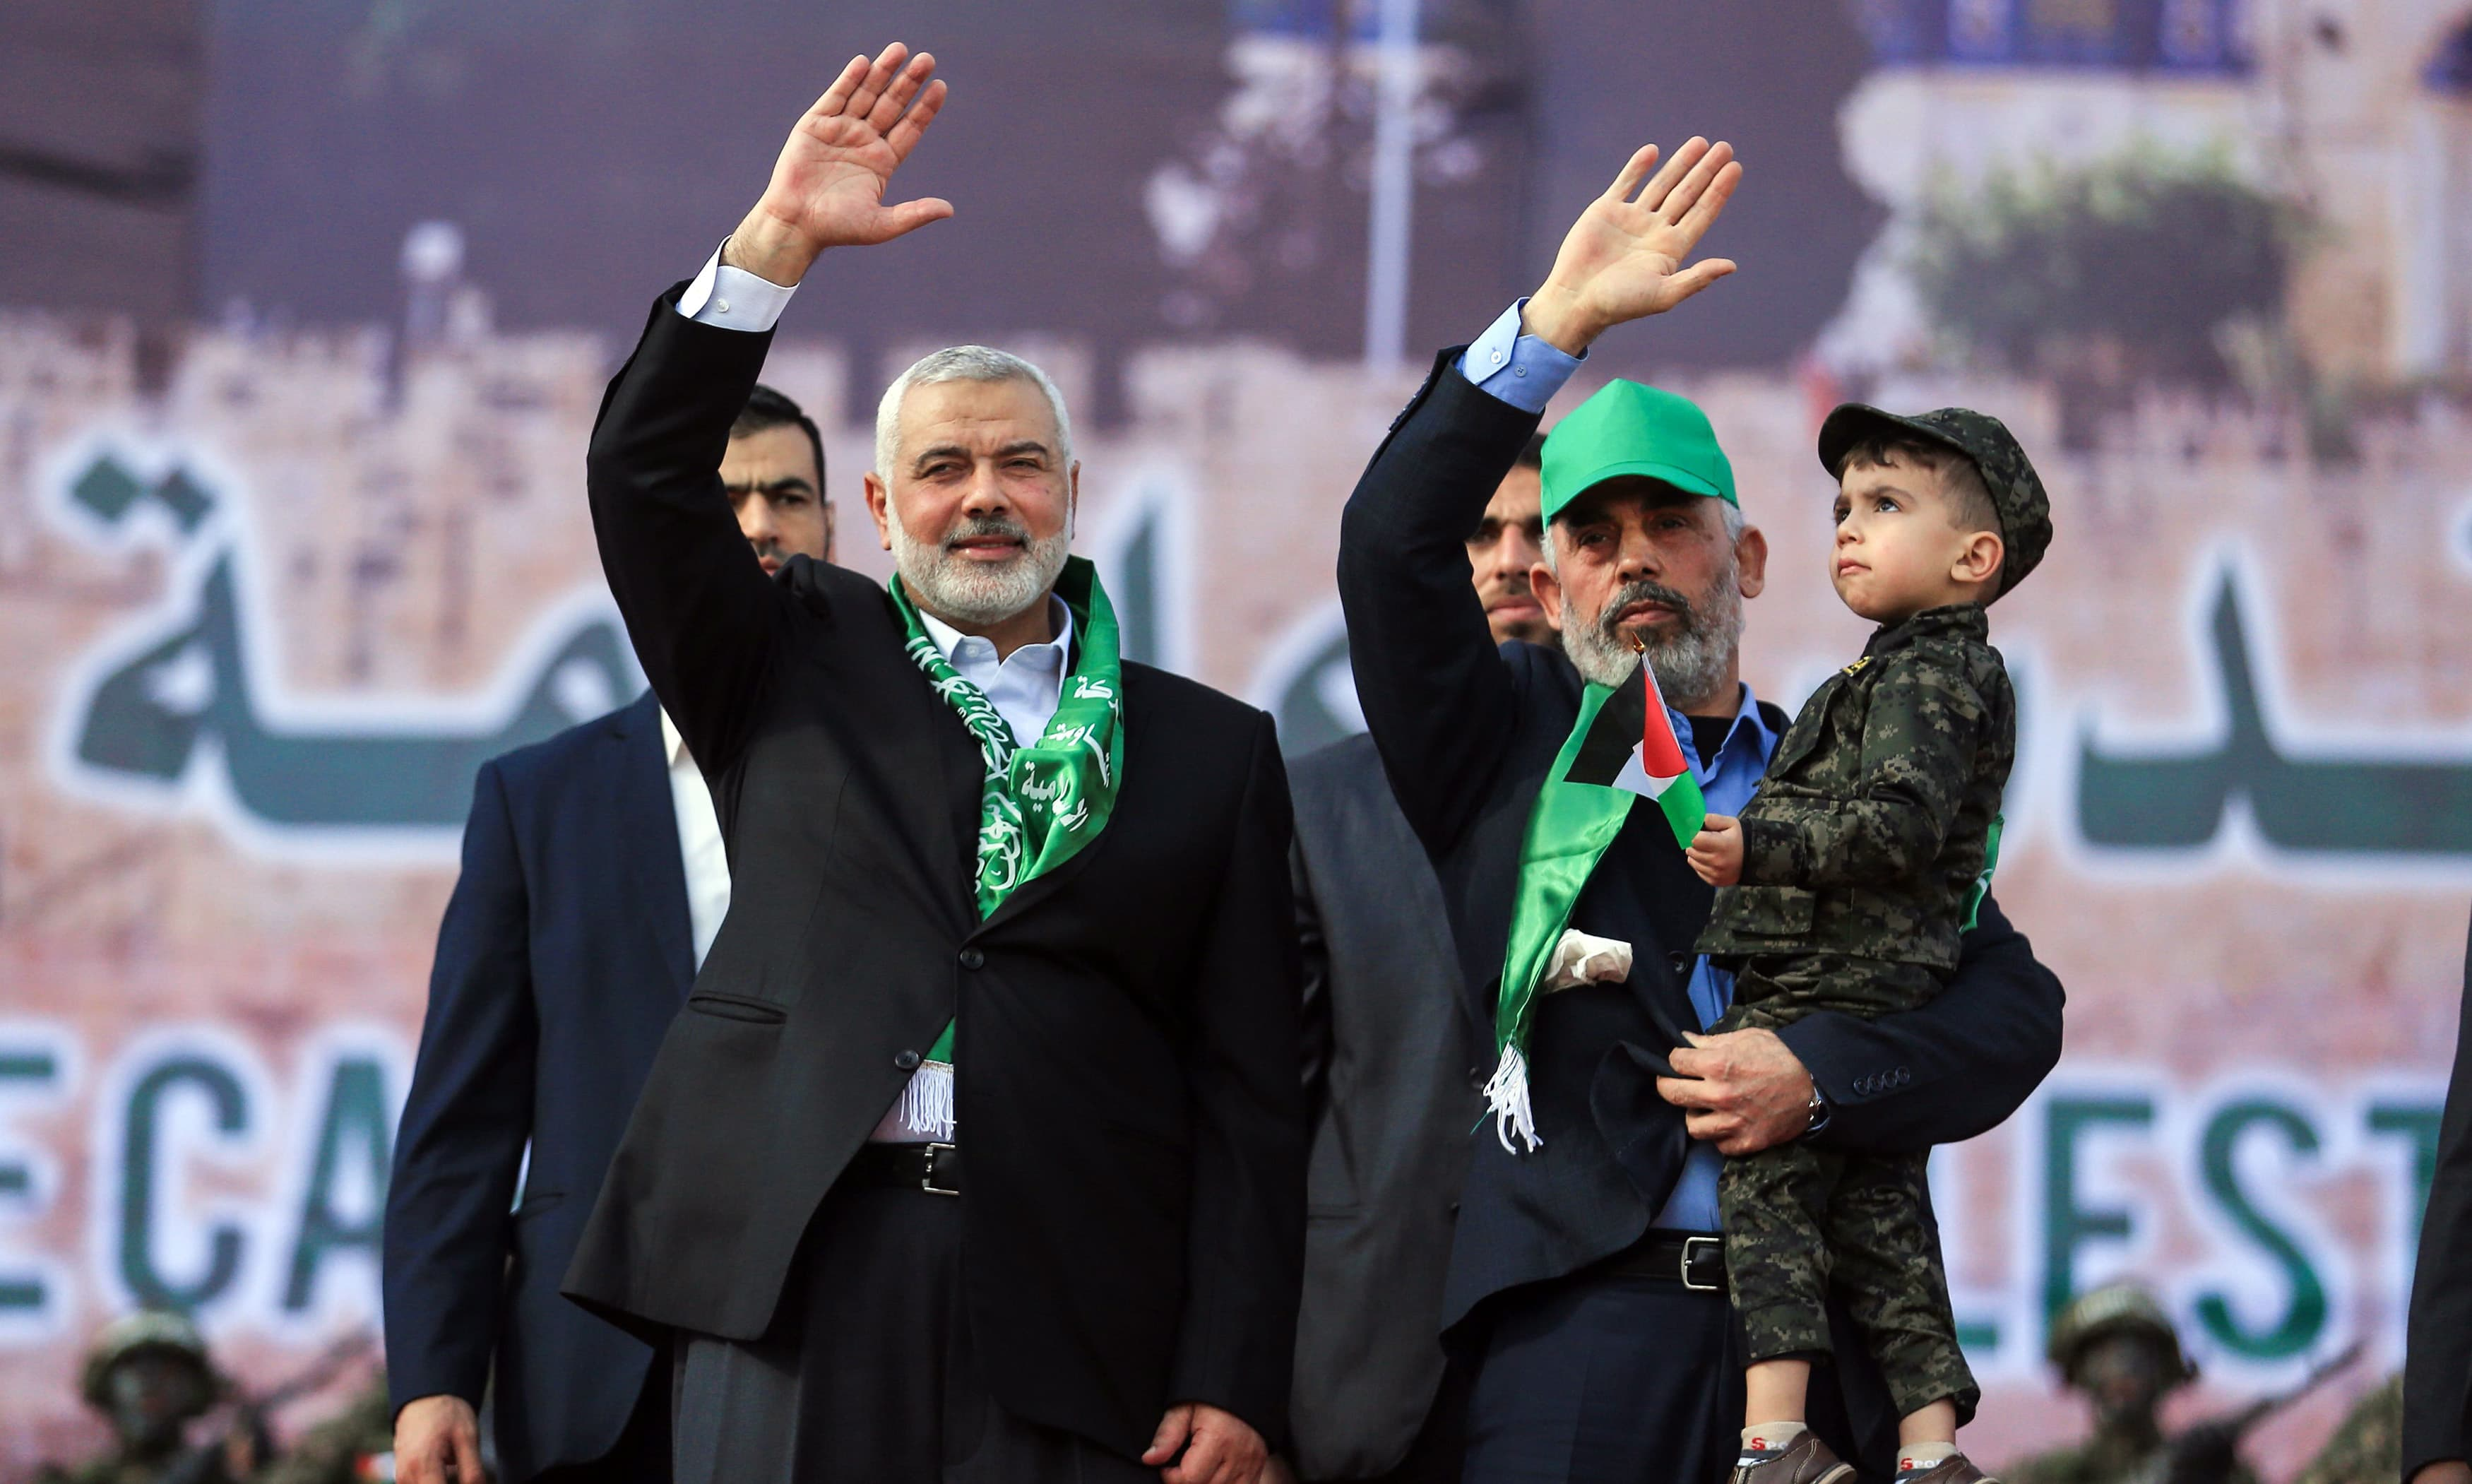 Hamas leader Ismail Haniya waves during a rally marking the 30th of the founding of the movement. —AFP